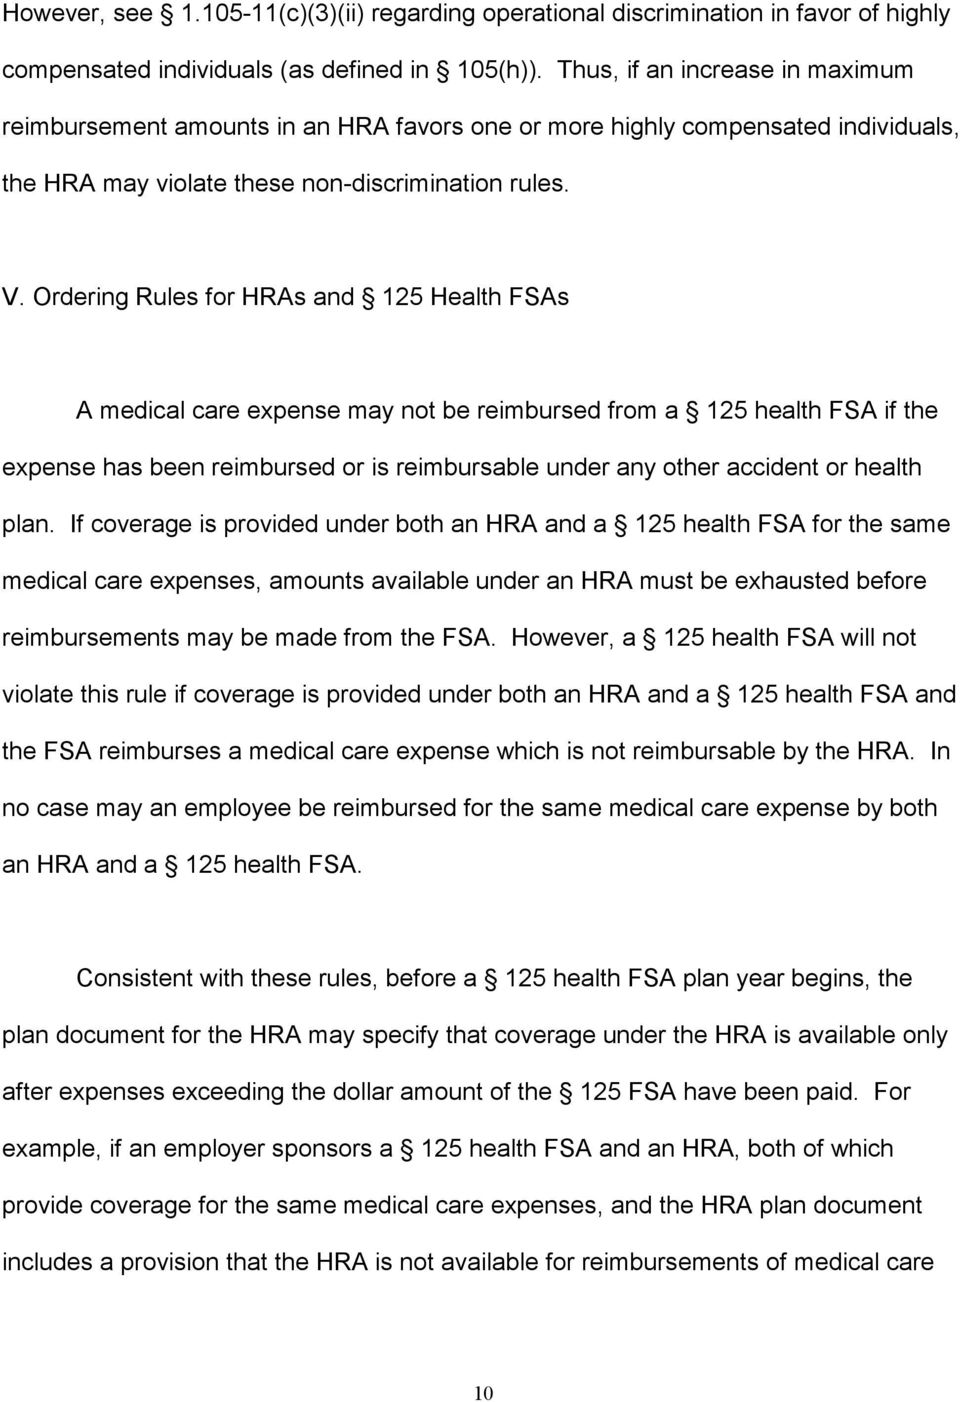 Ordering Rules for HRAs and 125 Health FSAs A medical care expense may not be reimbursed from a 125 health FSA if the expense has been reimbursed or is reimbursable under any other accident or health